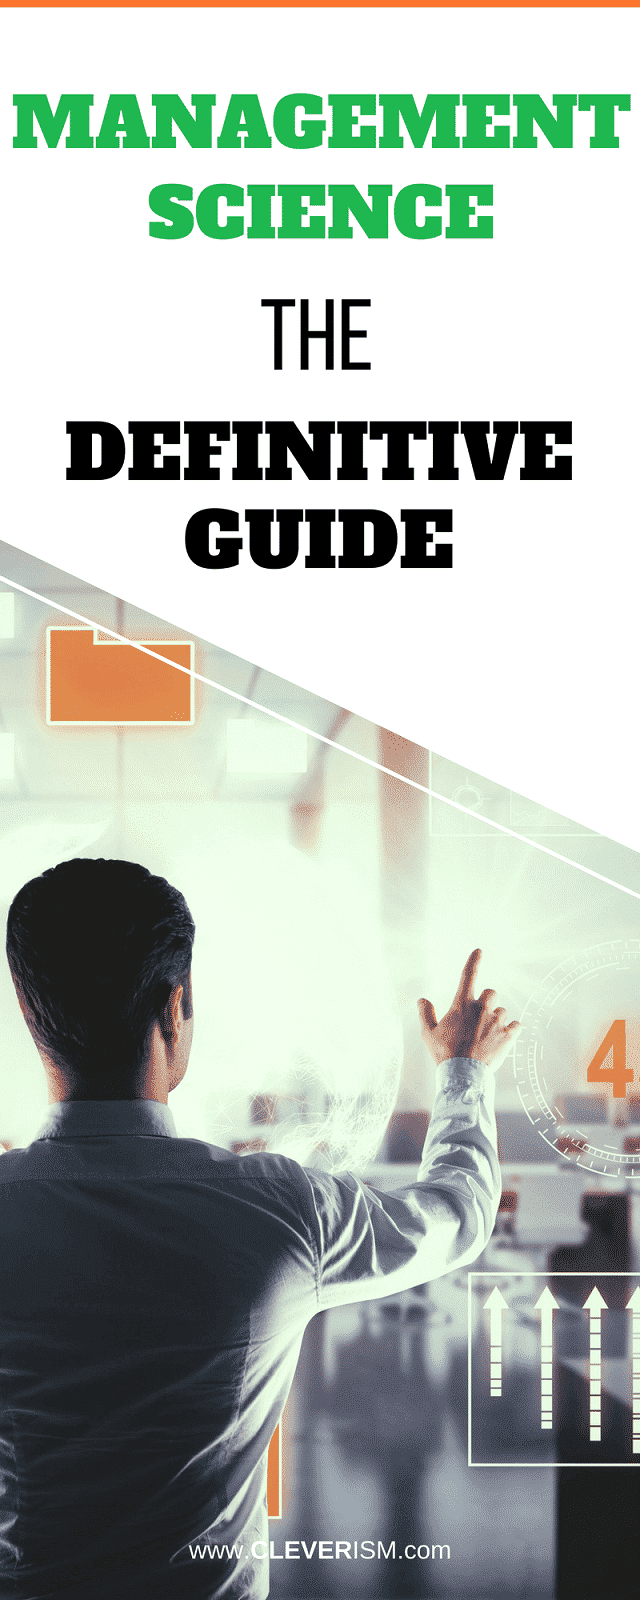 Management Science – The Definitive Guide